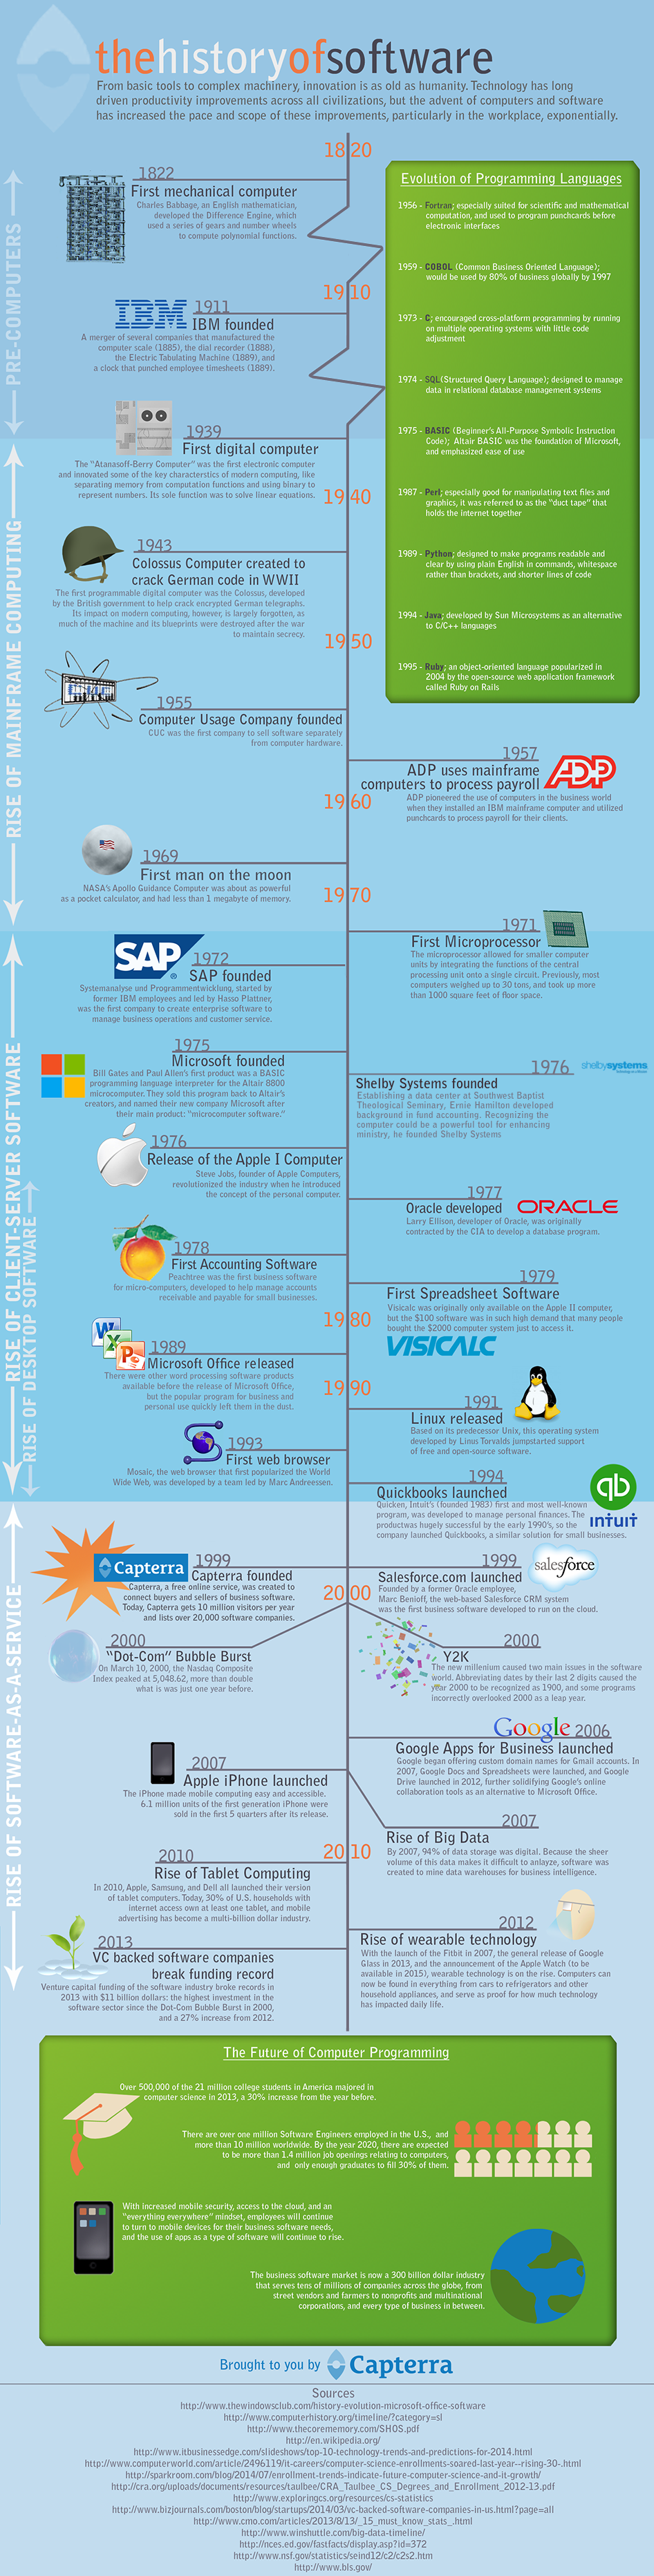 The History of Software